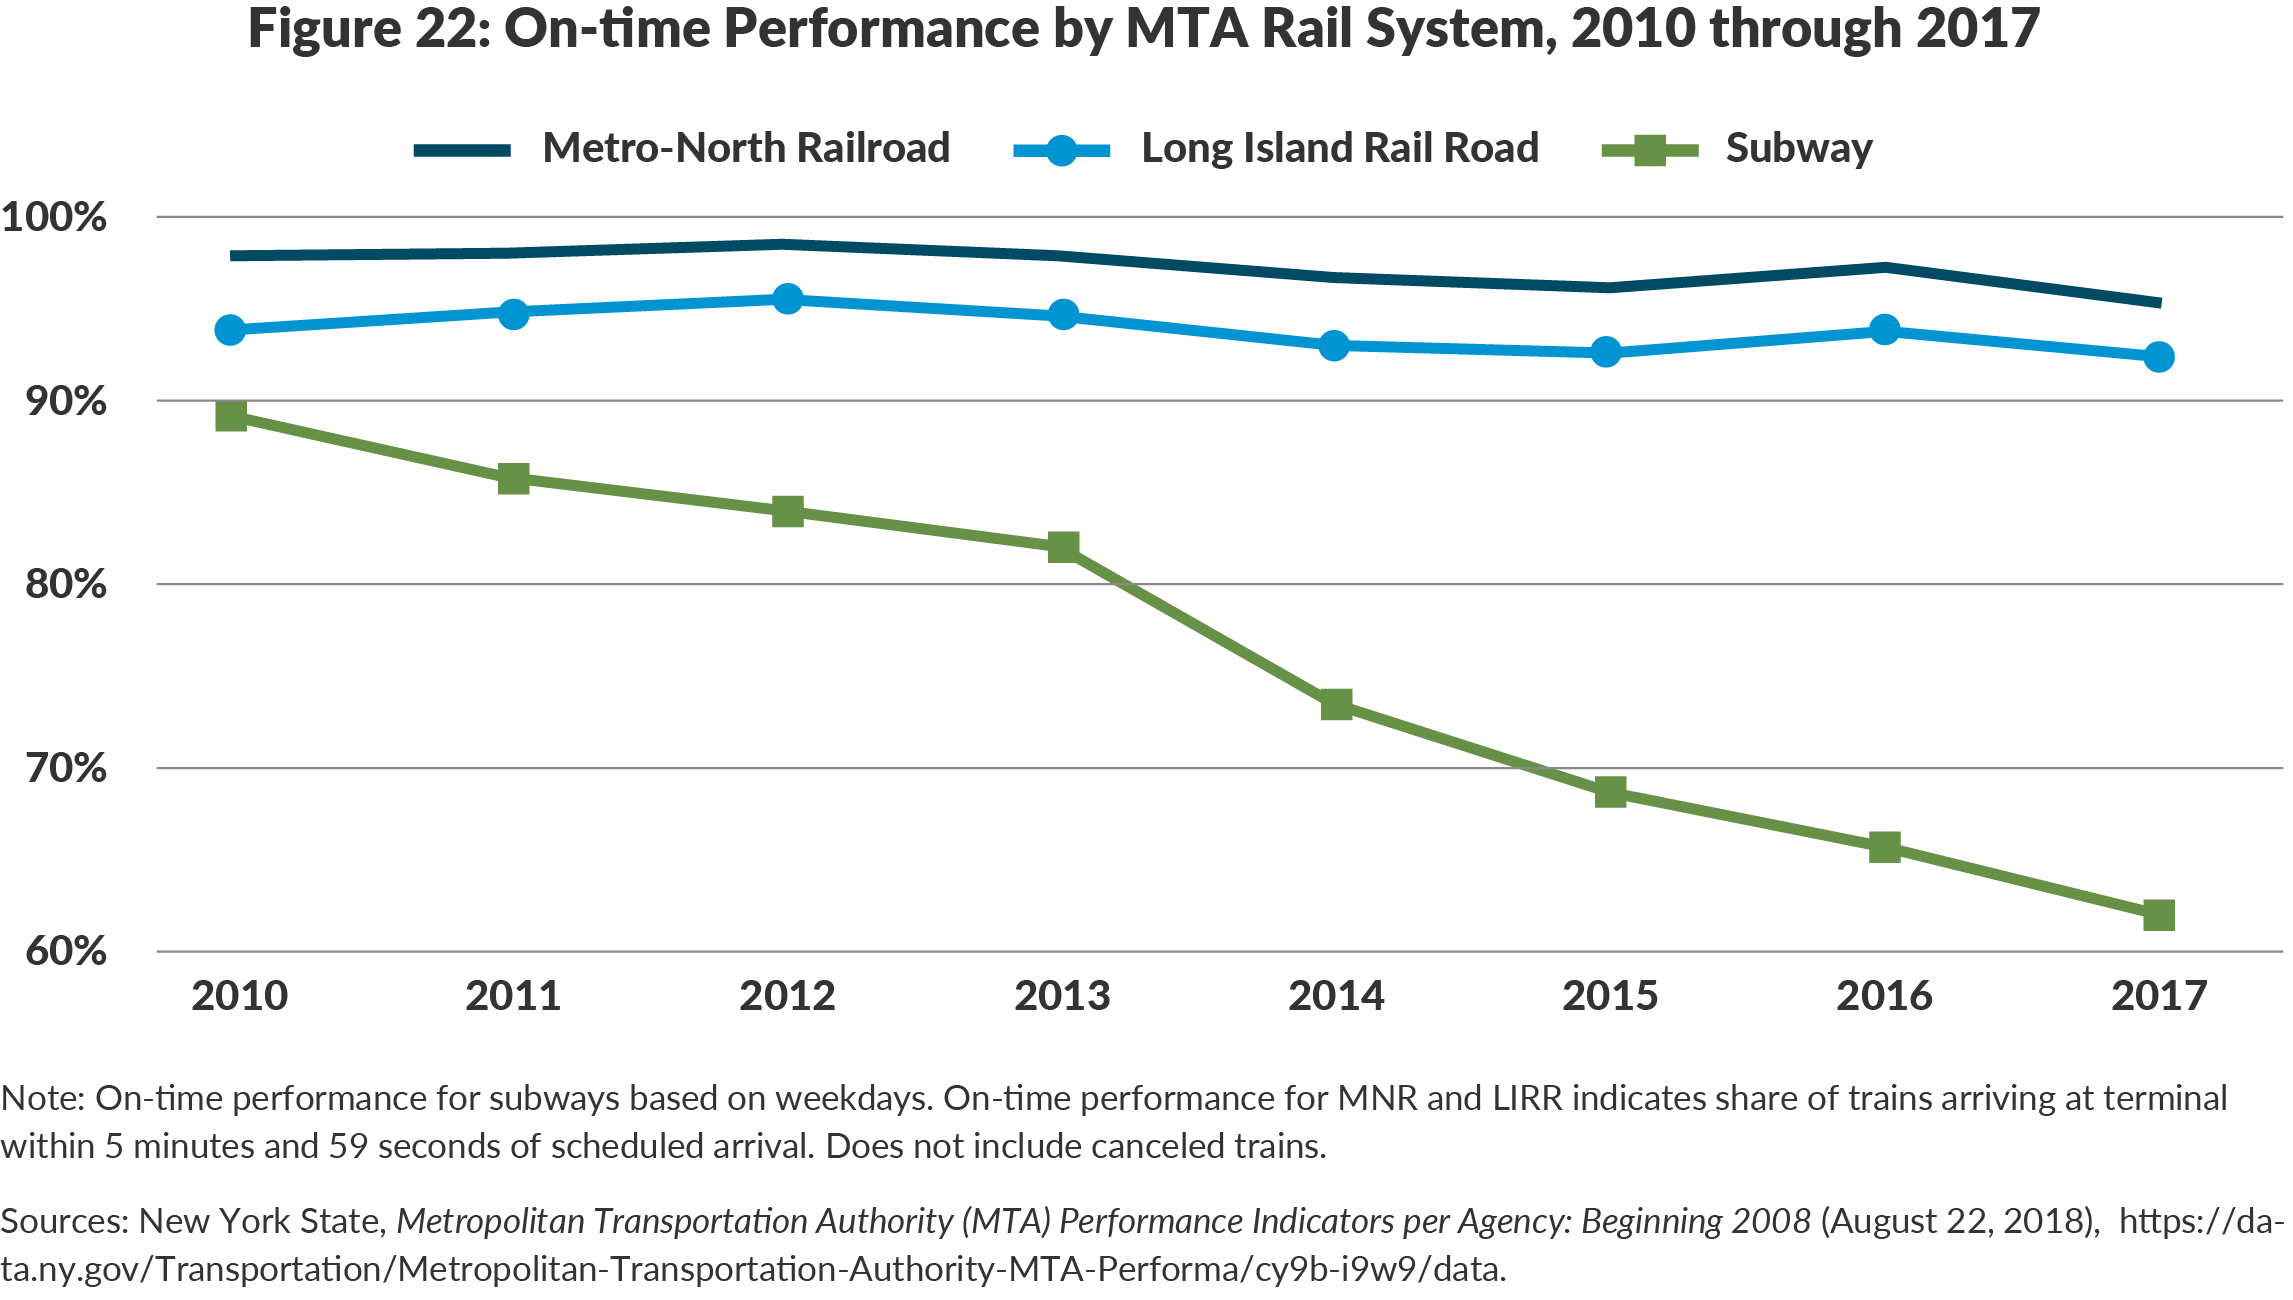 Figure 22: On-time Performance by MTA Rail System, 2010 through 2017